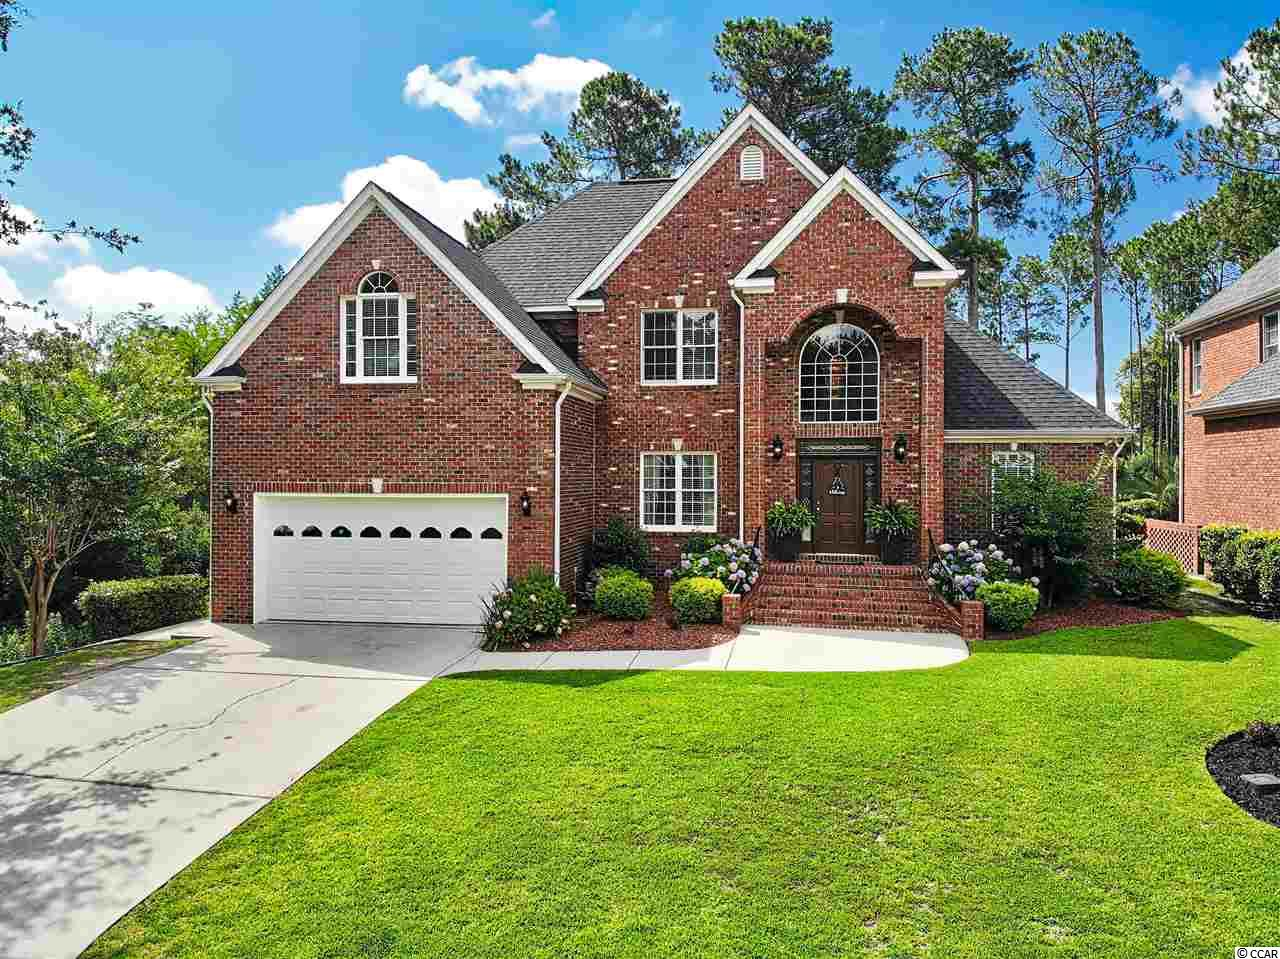 """This custom Builder's all brick home has the best of all worlds. Updates throughout that only a Builder's Home would have. Located at the very end of a quiet street, woods for privacy on one side of it, and you can relax under the covered pergola on the back porch and watch the golfers play the 13th hole on the prestigious River Hills Golf Course. Built-in Surround Sound throughout the house including outdoor speakers on the porch for entertaining. The 1st floor has 10 rooms. Step through the front door which is surrounded with beveled glass and into the open foyer which has a gorgeous modern one-of-kind chandelier hanging from the 18' high ceiling, a classic black & white staircase going upstairs, with a cat-walk looking down into the foyer on one side and the Living Room on the other side. Real ¾"""" Red Oak Hardwood floors throughout the 1st floor. The big Living Room has a huge 18' vaulted ceiling with a cozy gas/propane fireplace, plenty of windows with natural morning light pouring in (or keep it out with the 2"""" Plantation Shutters). Ceiling Fans in almost every room in the entire home. The formal Dining Room is beautifully decorated with custom paint & is off the Kitchen & Living Room, allowing an open concept for entertaining. The kitchen has custom Maple cabinets, granite counter tops, newer stainless-steel appliances incl a Convection Oven with 6 smooth surface elements, a Breakfast Bar & a Breakfast Nook. The large Master Bedroom has an ensuite bathroom with double vanities, walk-in shower & a relaxing oversized jetted soaker tub. The Master walk-in closet is very large and has built-in shelving. This floor plan provides a private hallway to a possible mother-in-law suite on the other end of the main floor which also has a full bathroom. This is currently being used as an office. Upstairs there are 6 more rooms including two bedrooms with great natural light. One of those bedrooms has the best view in the house overlooking the pond on the golf course. Jack-n"""